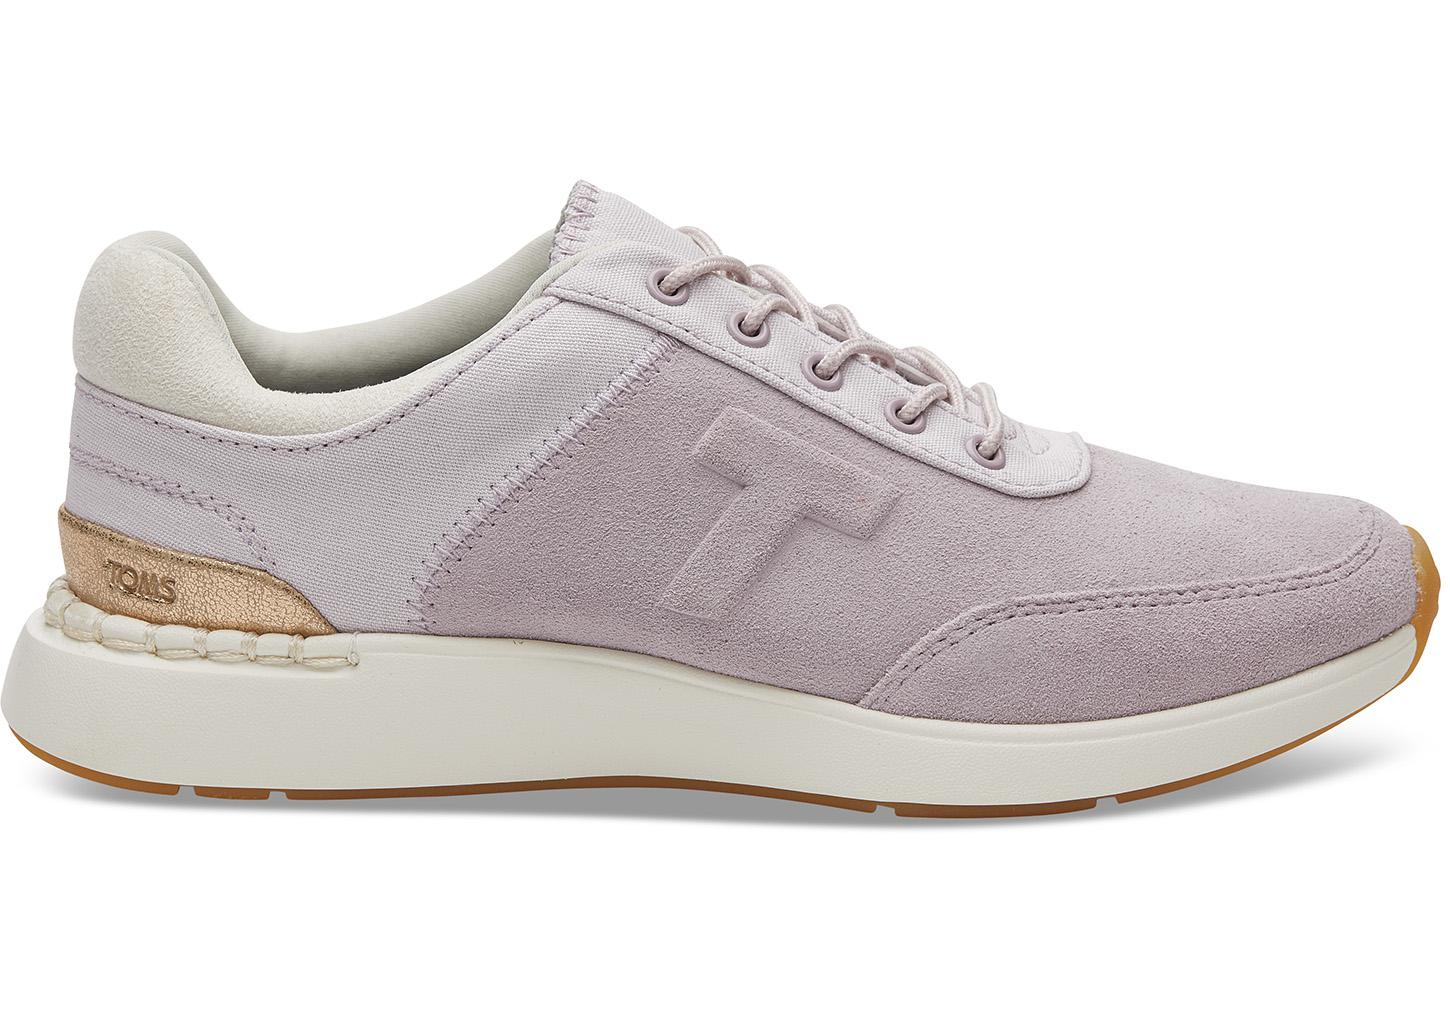 1a25334787c1 Lyst - TOMS Lilac Suede And Canvas Arroyo Women s Sneakers